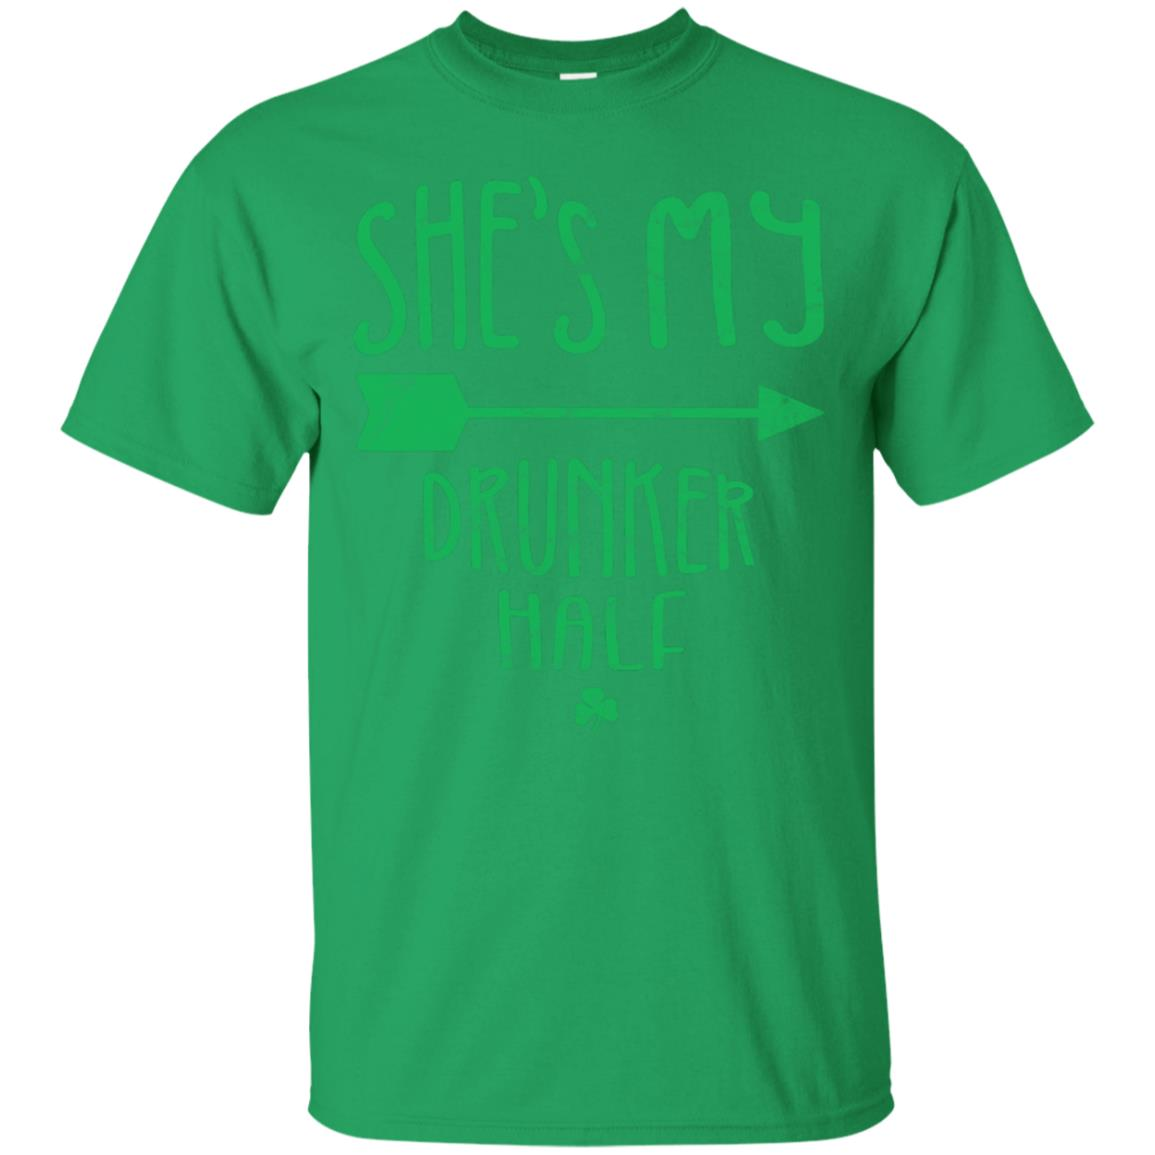 Mens She's My Drunker Half Saint Patrick's Day Couples T-shirt 99promocode